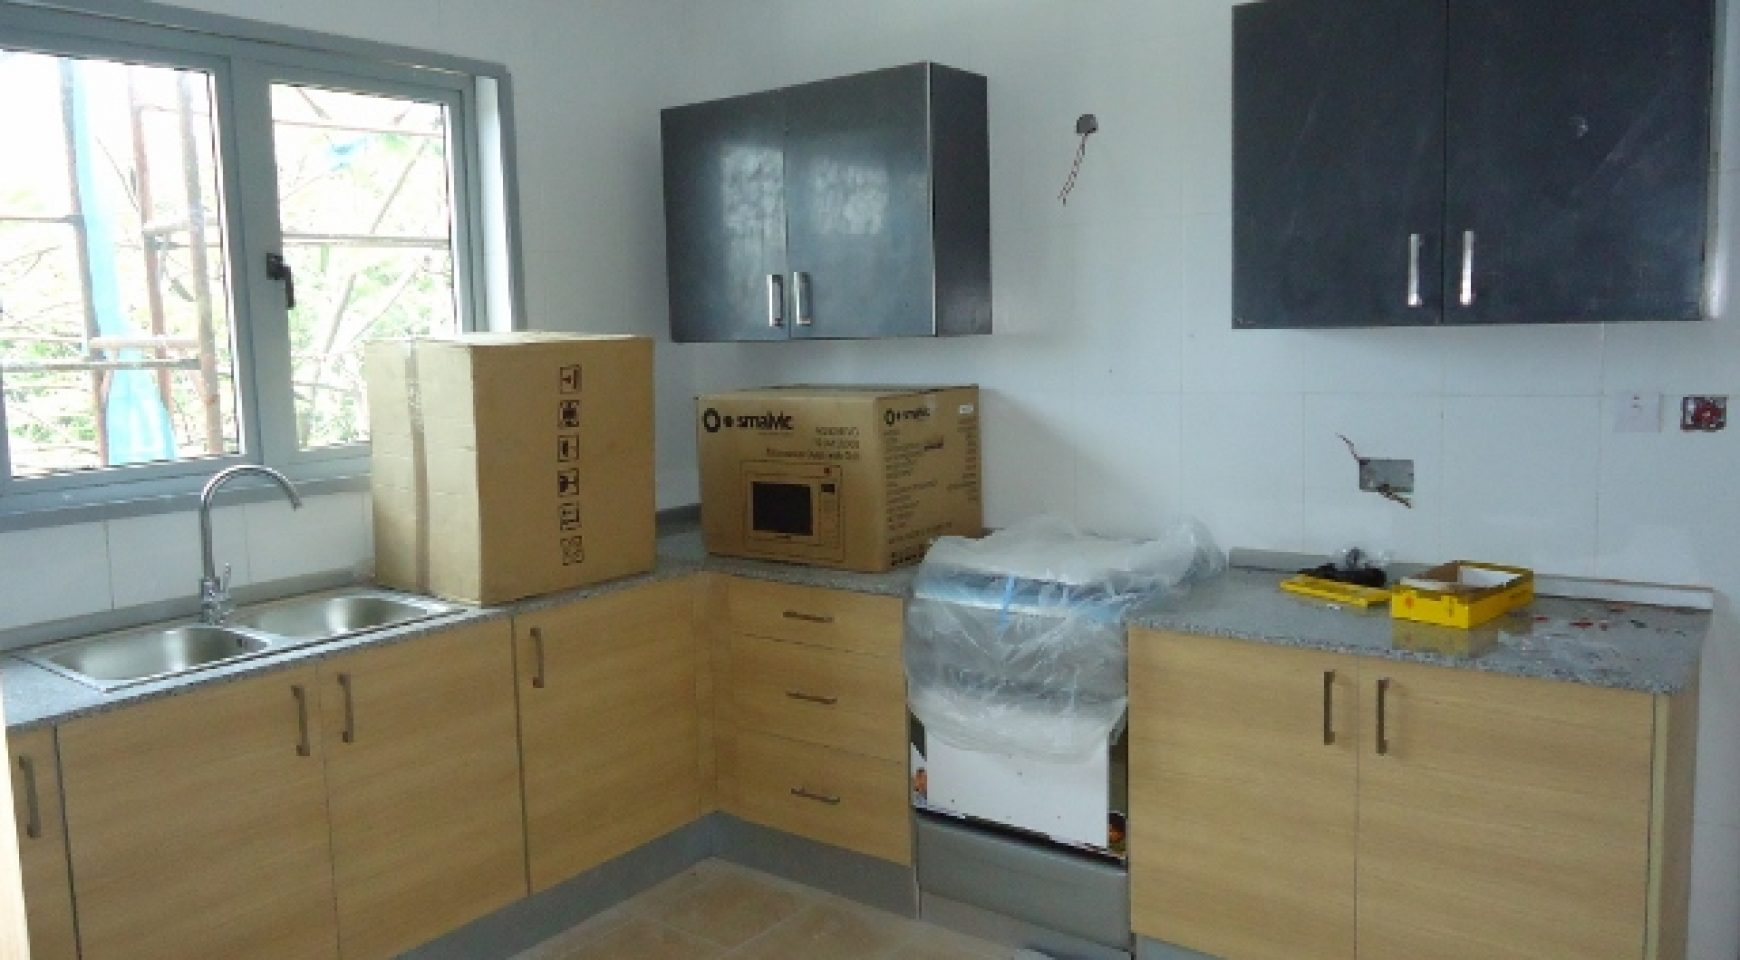 9 units of 3 Bedroom and 1 unit of 2 bedroom Apartments - First ...